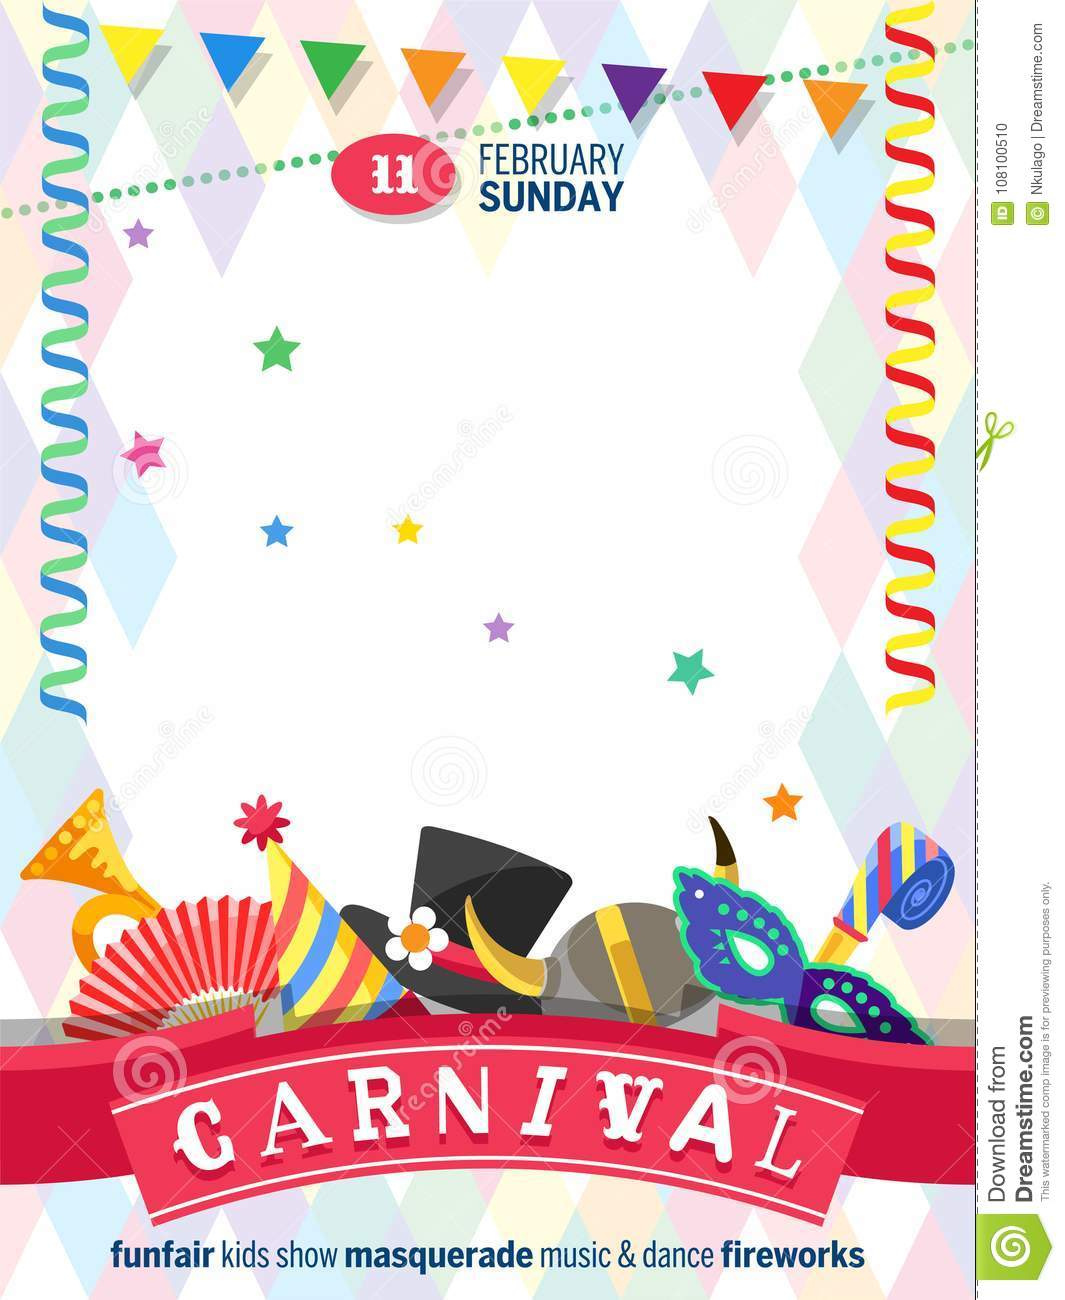 Greeting Poster For Carnival With Colorful Festive Elements